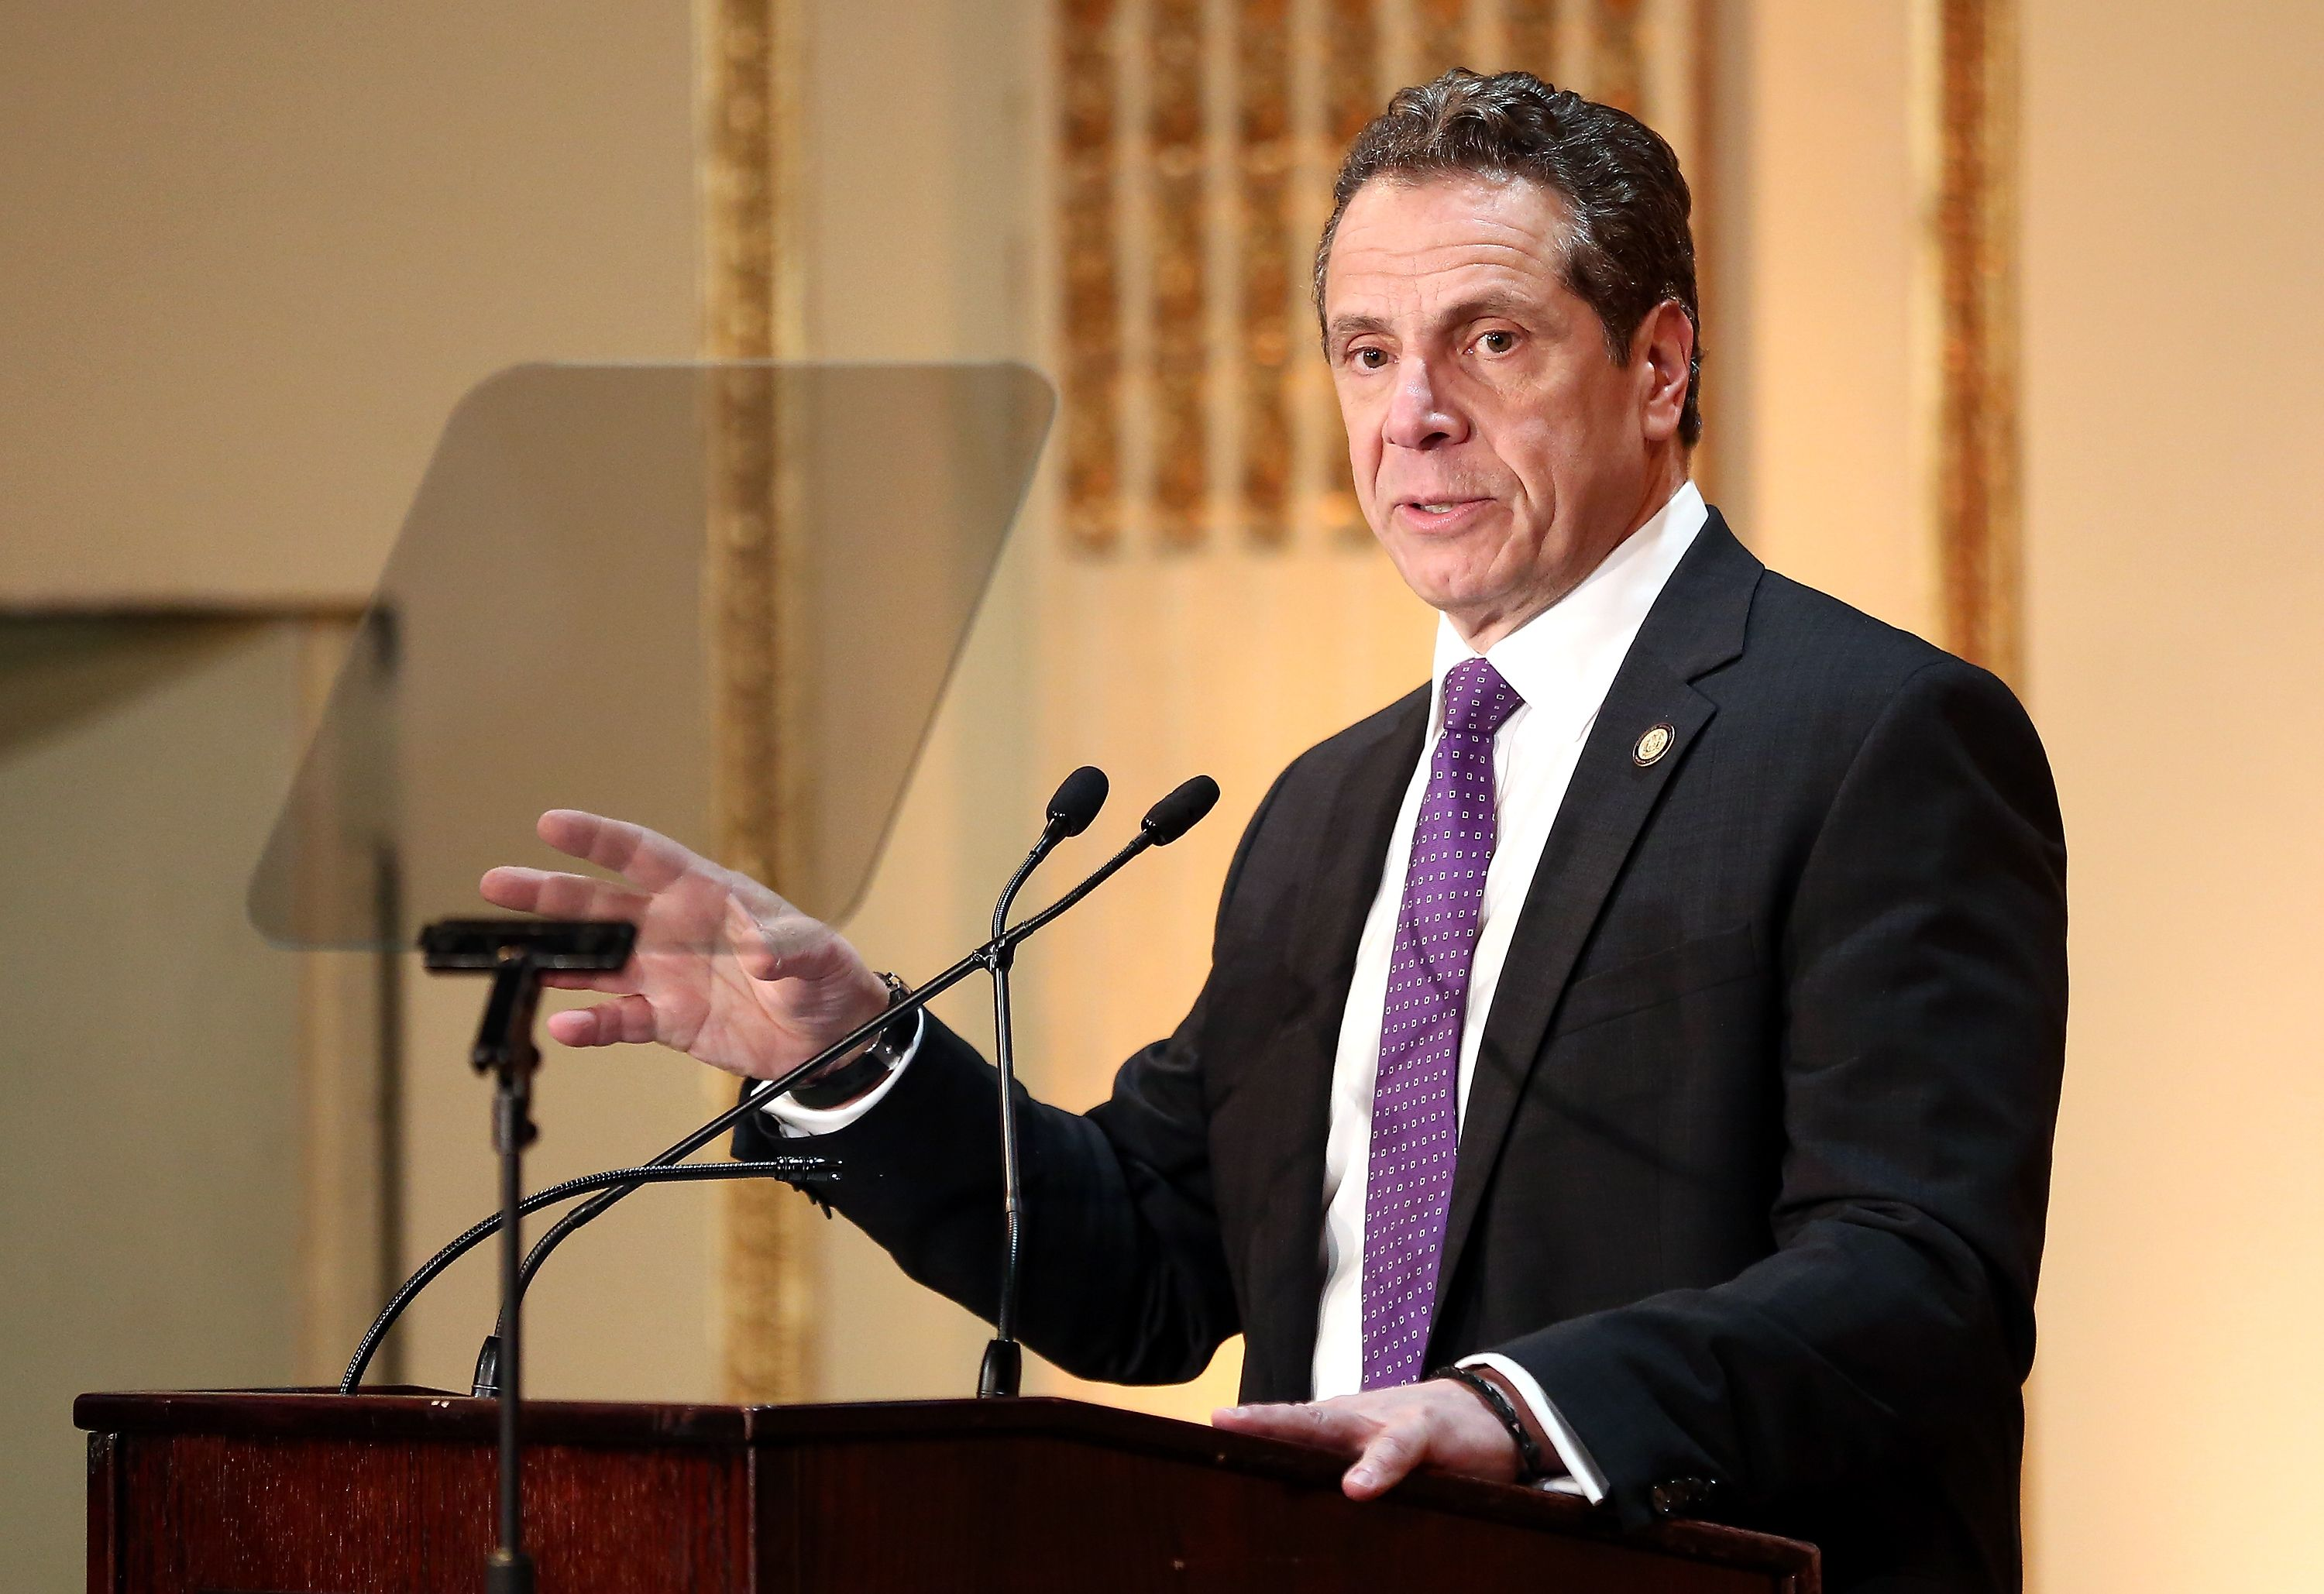 Governor of New York State Andrew Cuomo speaks on stage at the HELP USA 30th Anniversary Event at The Plaza Hotel on March 16, 2017   Photo: Getty Images